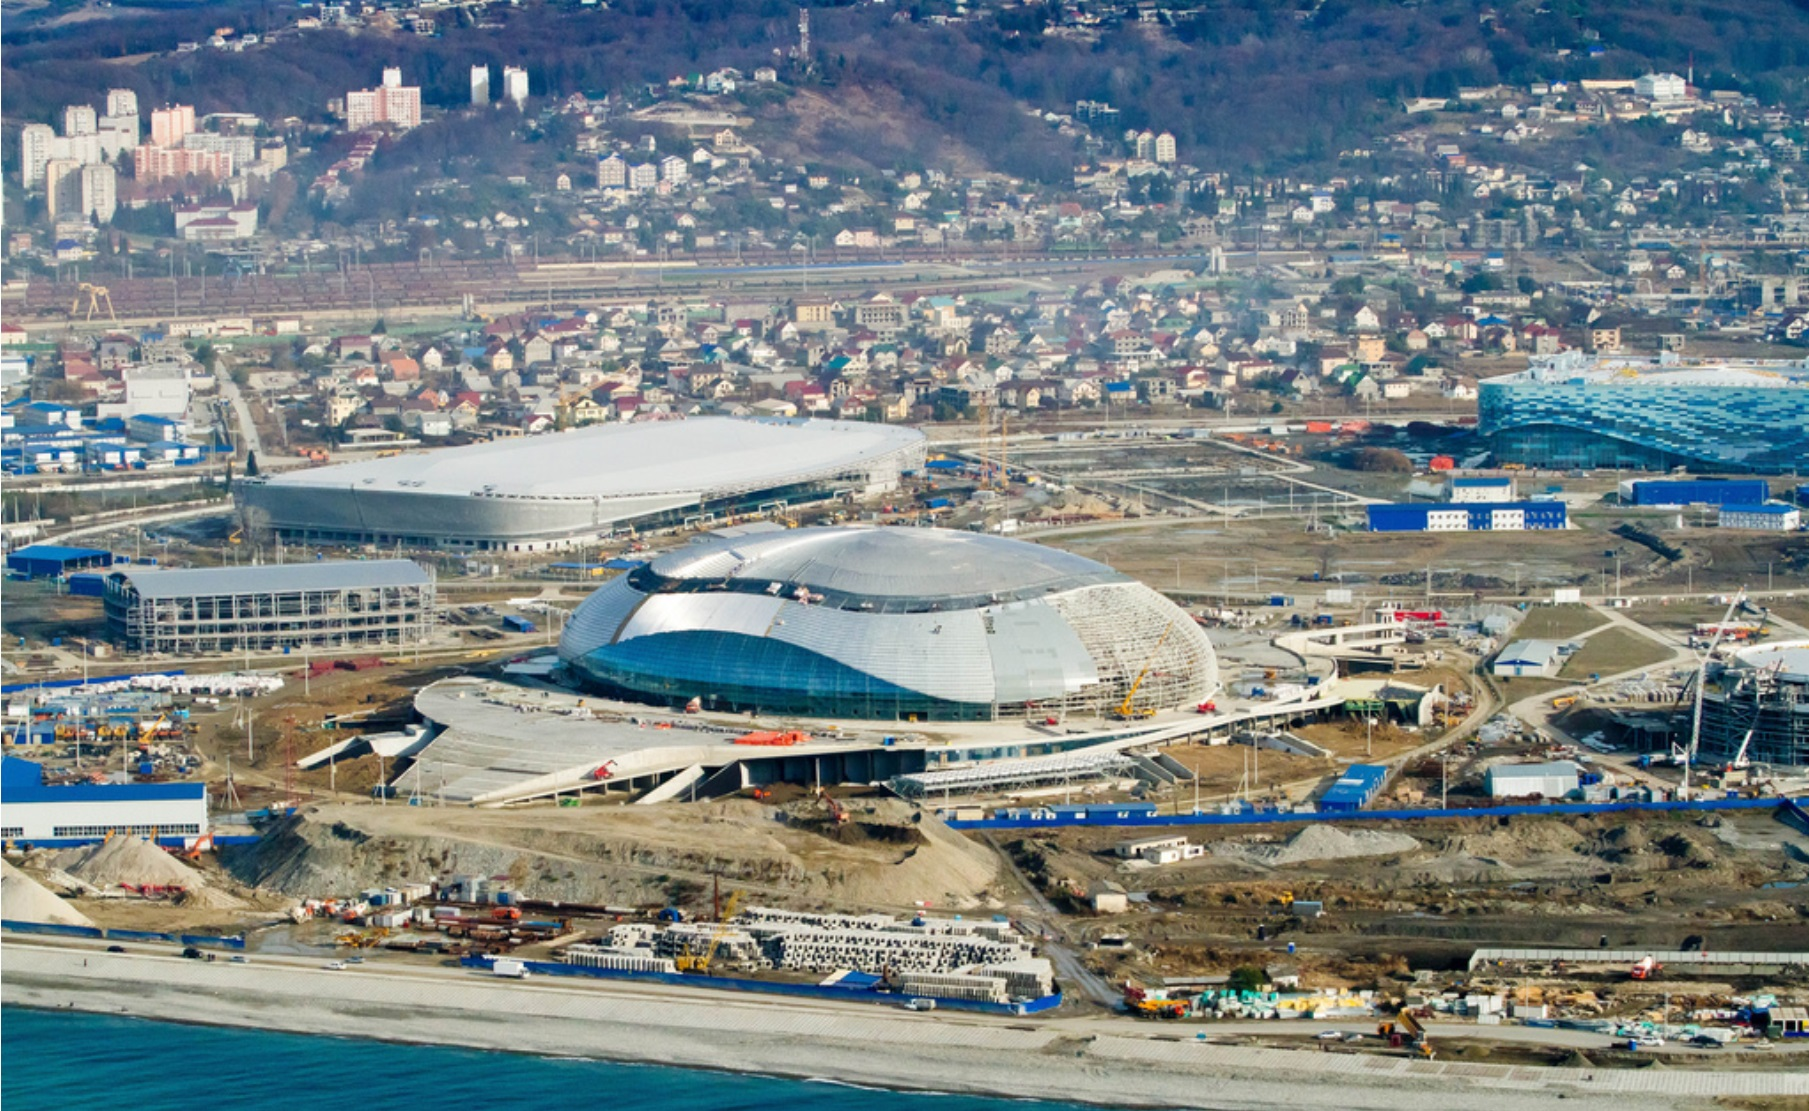 aerial of the Sochi Olympics